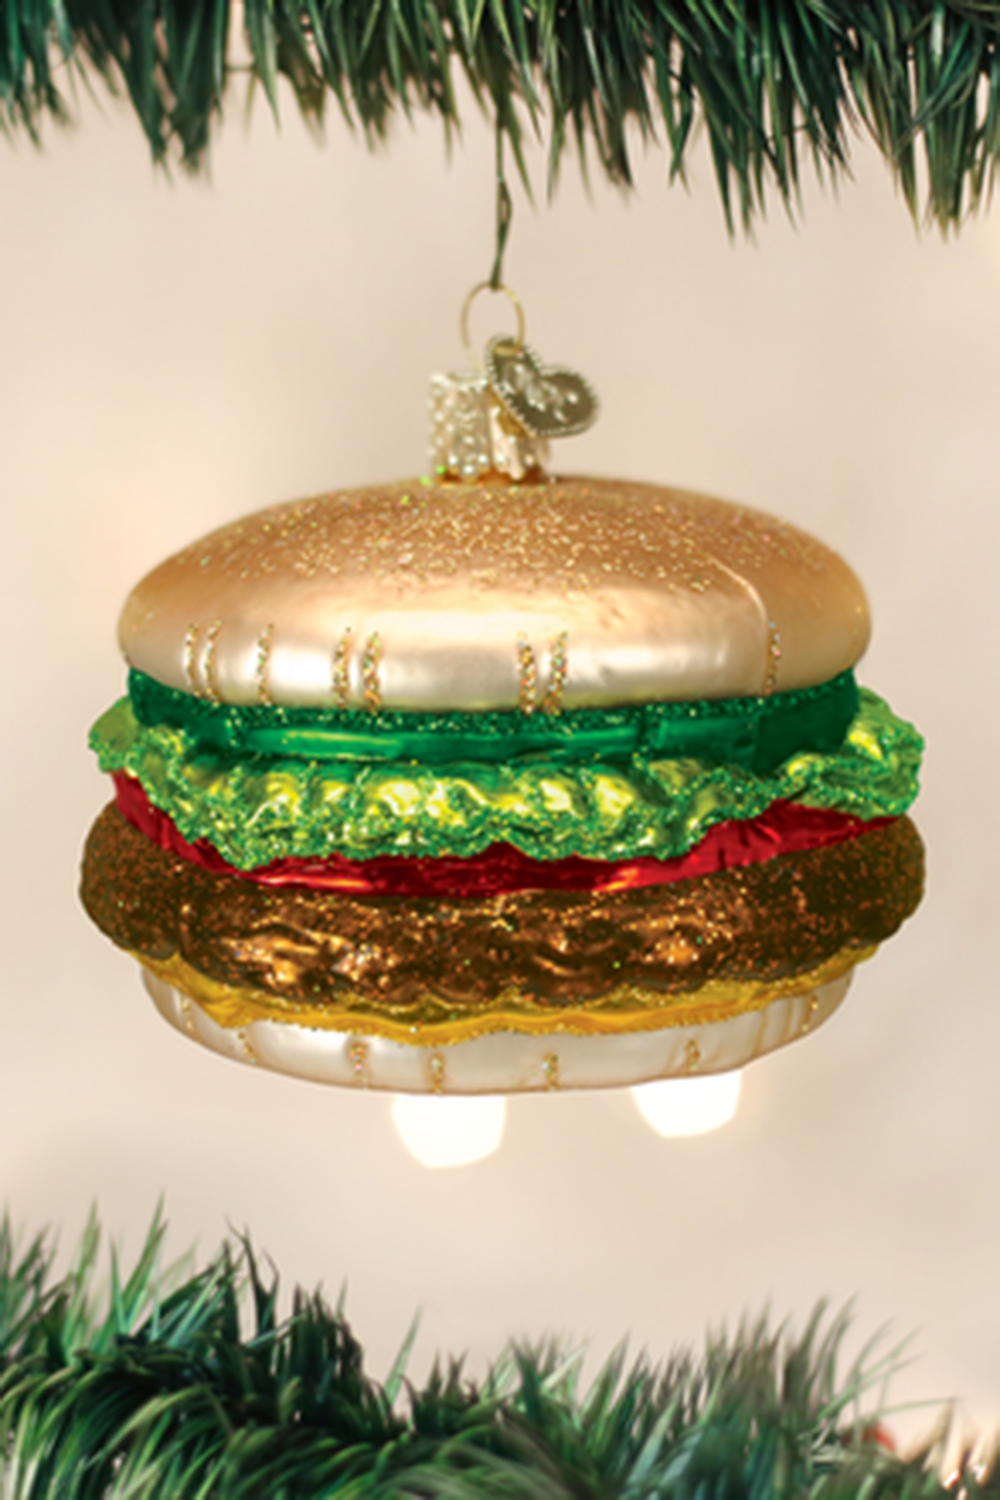 Glass Ornament - Cheeseburger